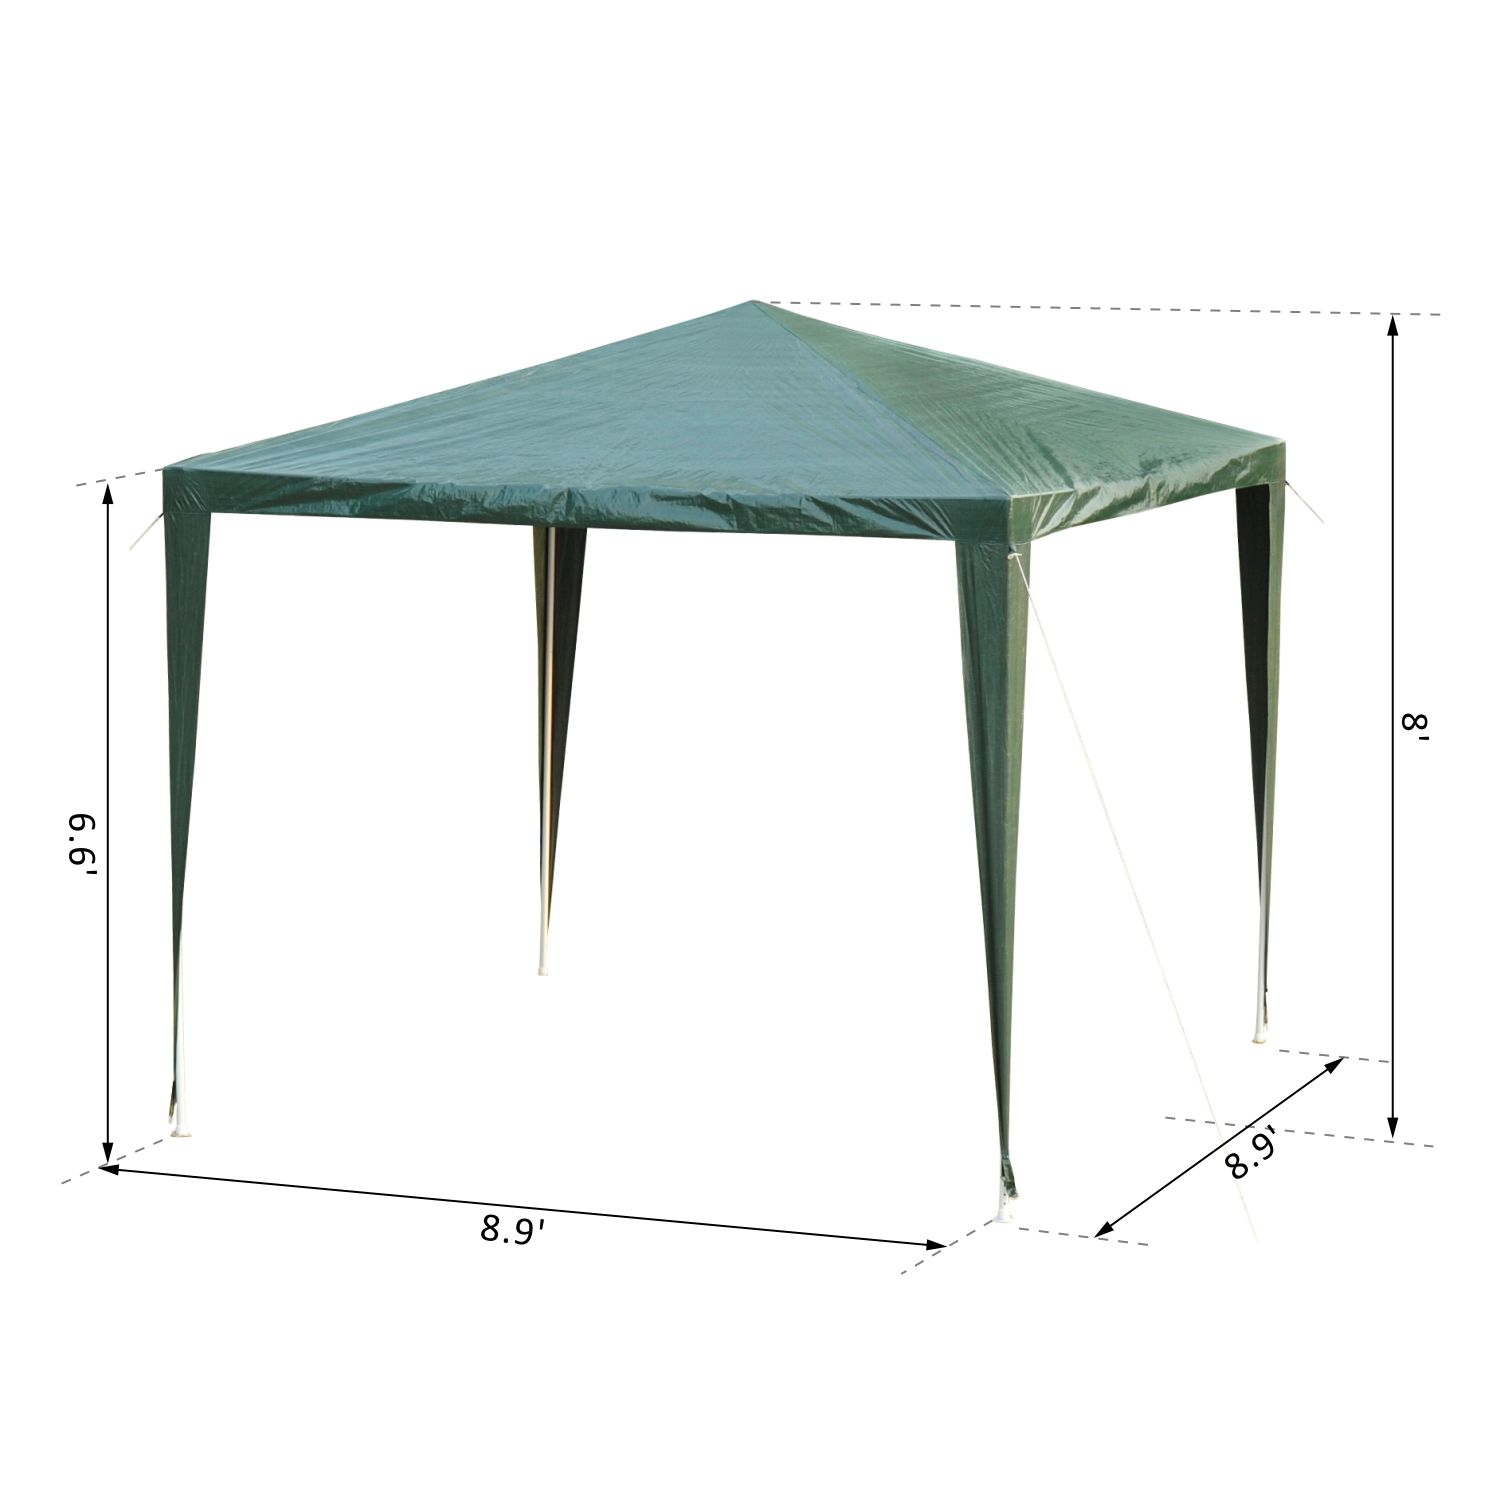 9x9ft-Party-Gazebo-Tent-Event-Shelter-Sunshade-Portable-w-Carry-Bag